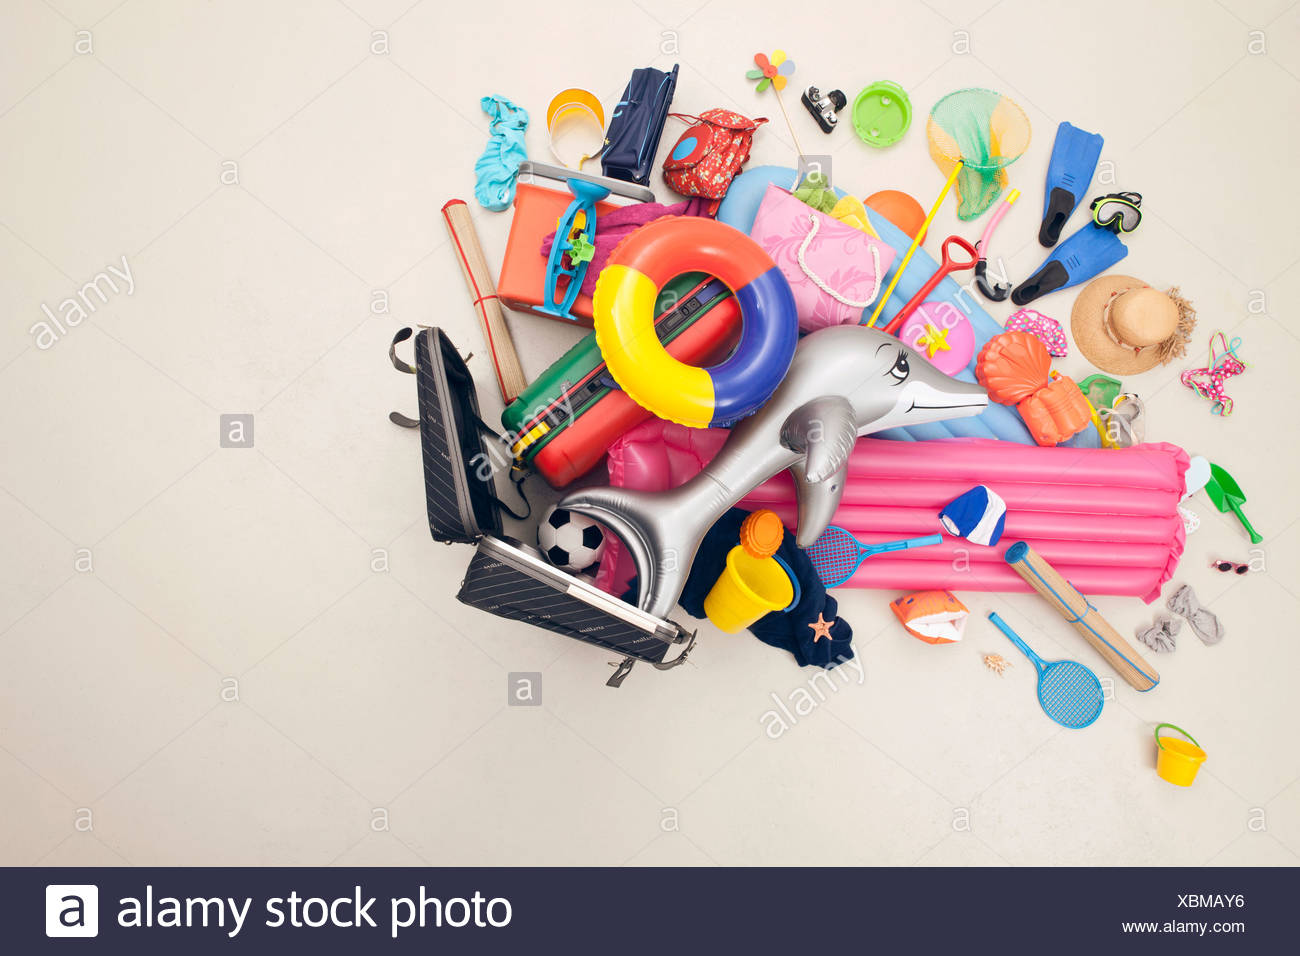 Germany, Artificial scene with beach toys coming out of baggage - Stock Image